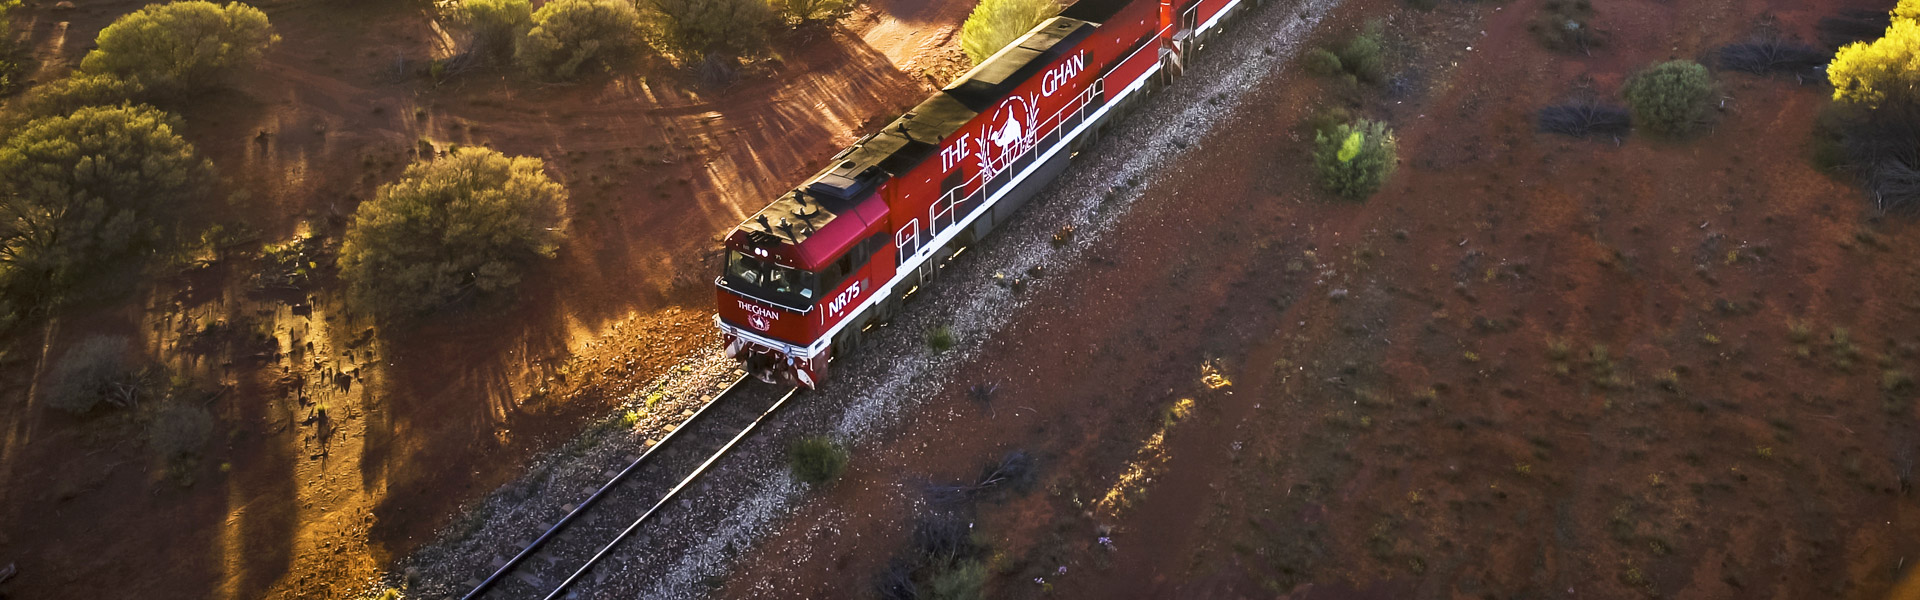 West Coast, The Kimberley & Top End with Sea Princess & The Ghan